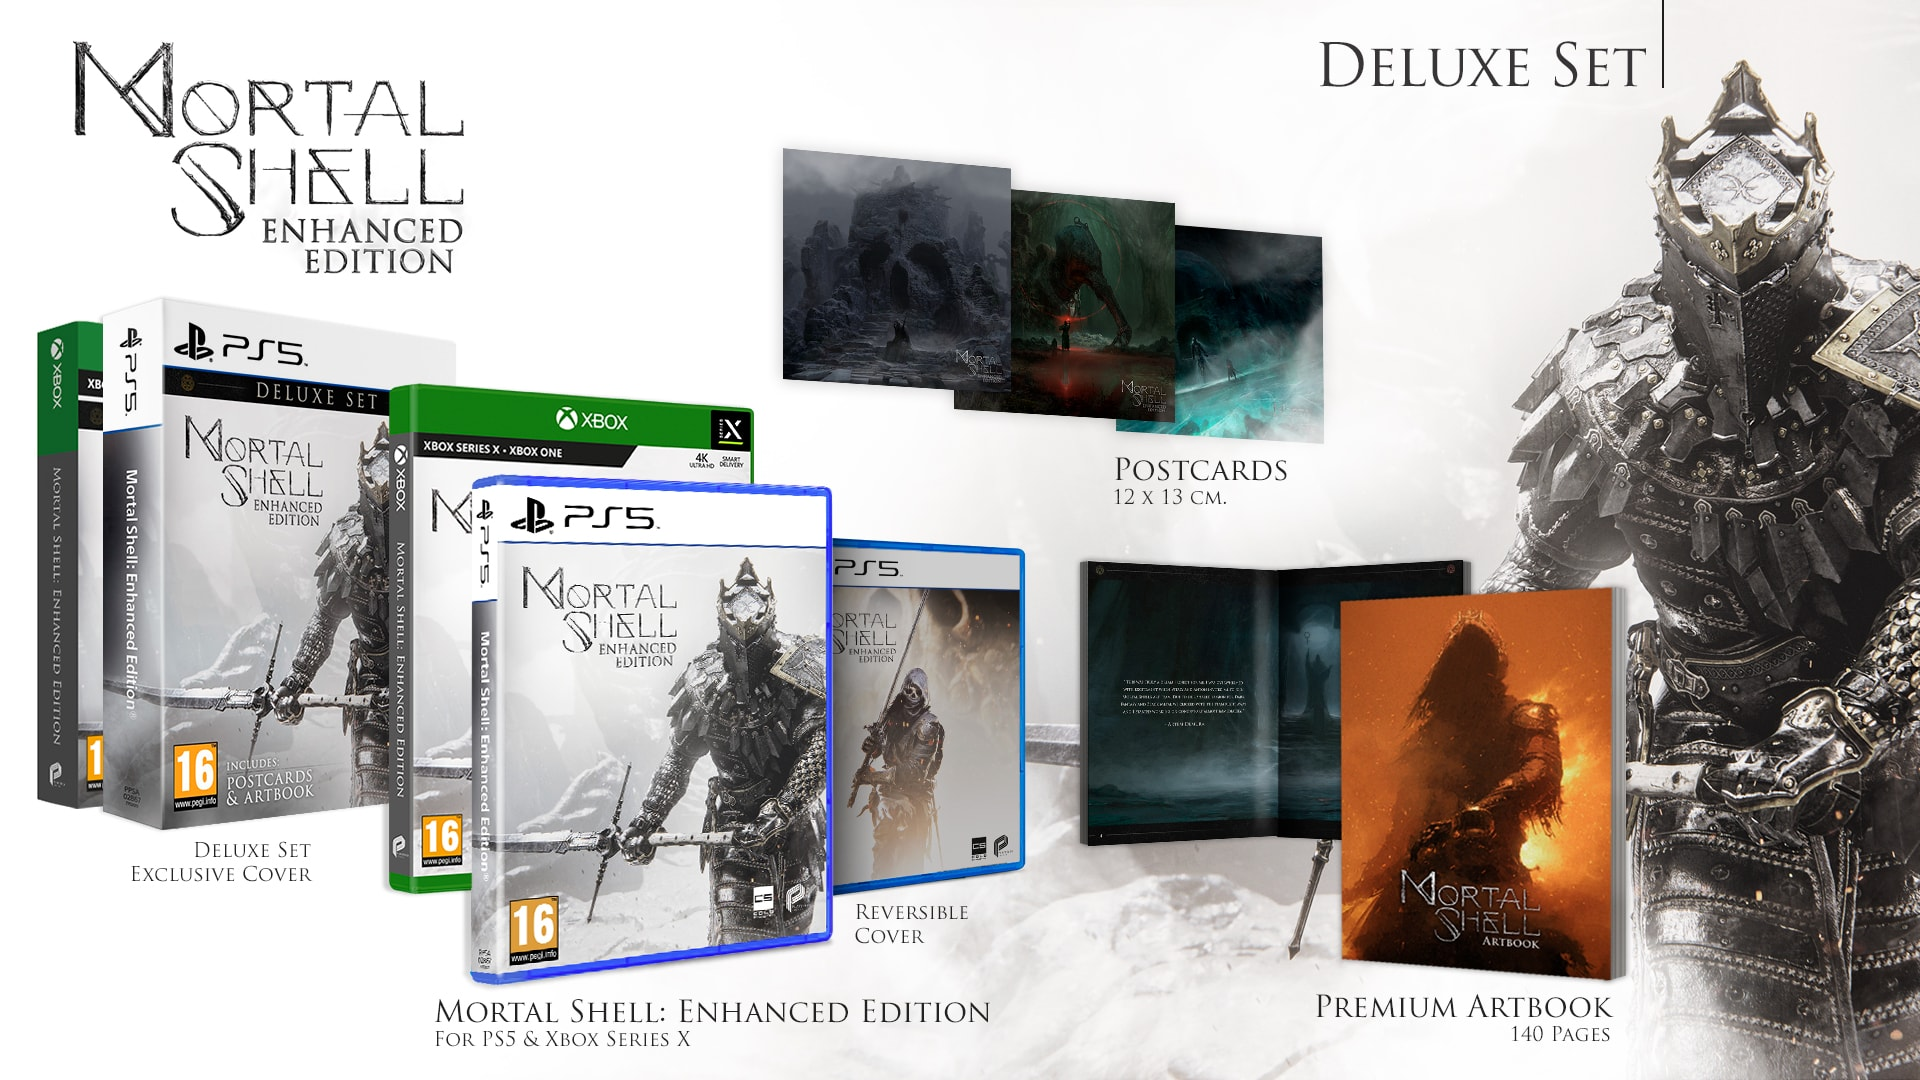 Buy Mortal Shell: Enhanced Edition - Deluxe Set on Xbox Series X | GAME